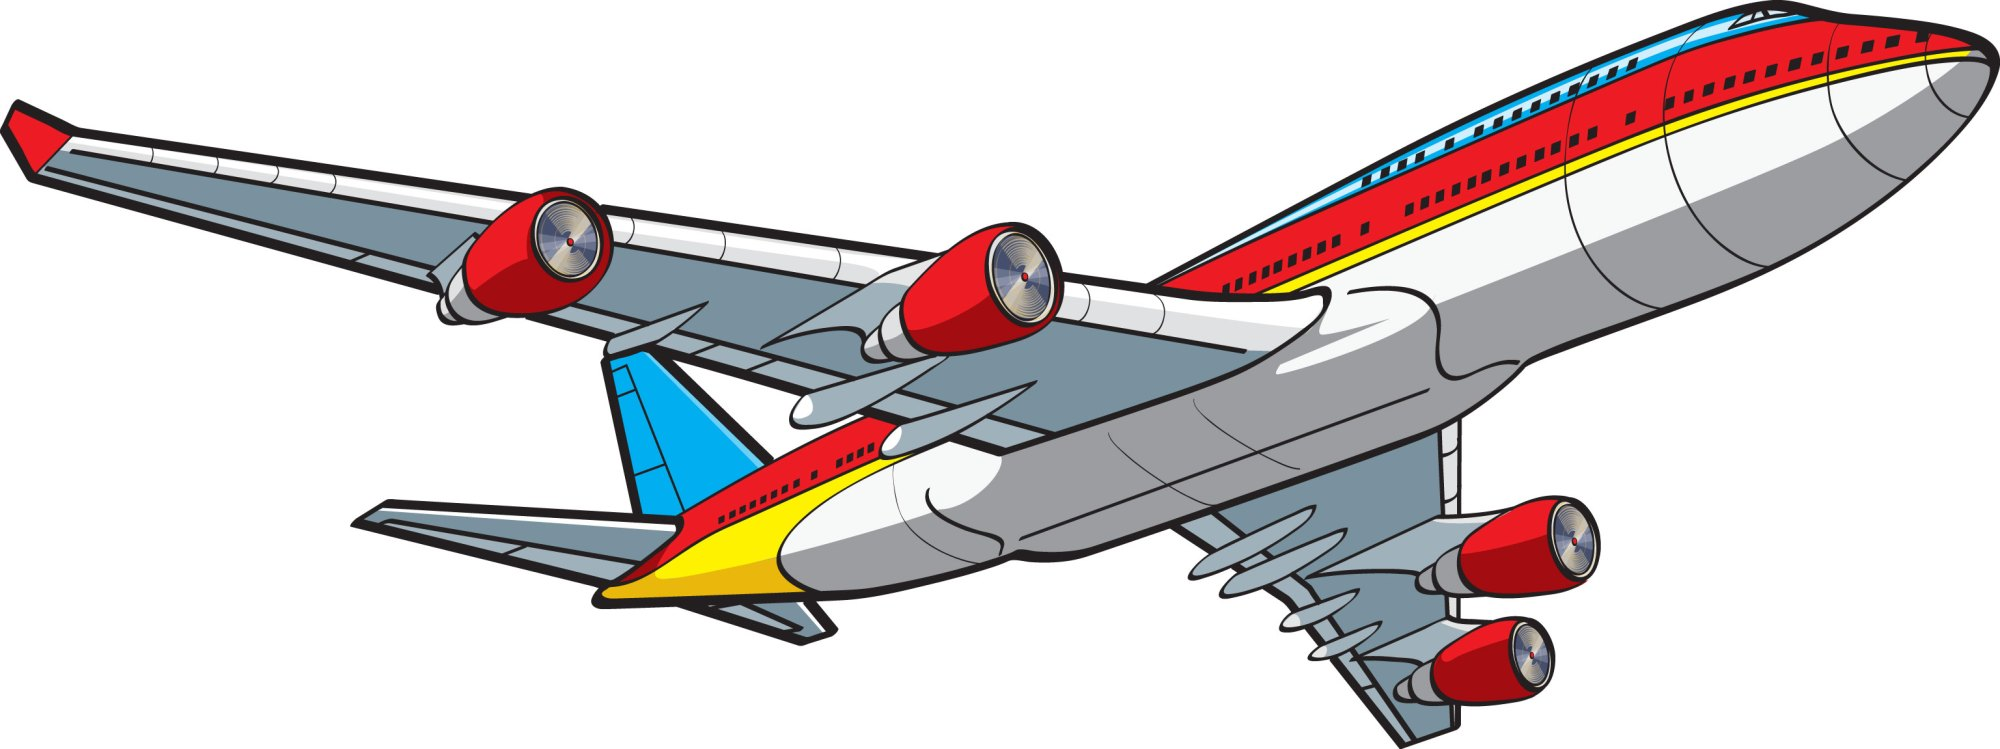 hight resolution of cute airplane clipart